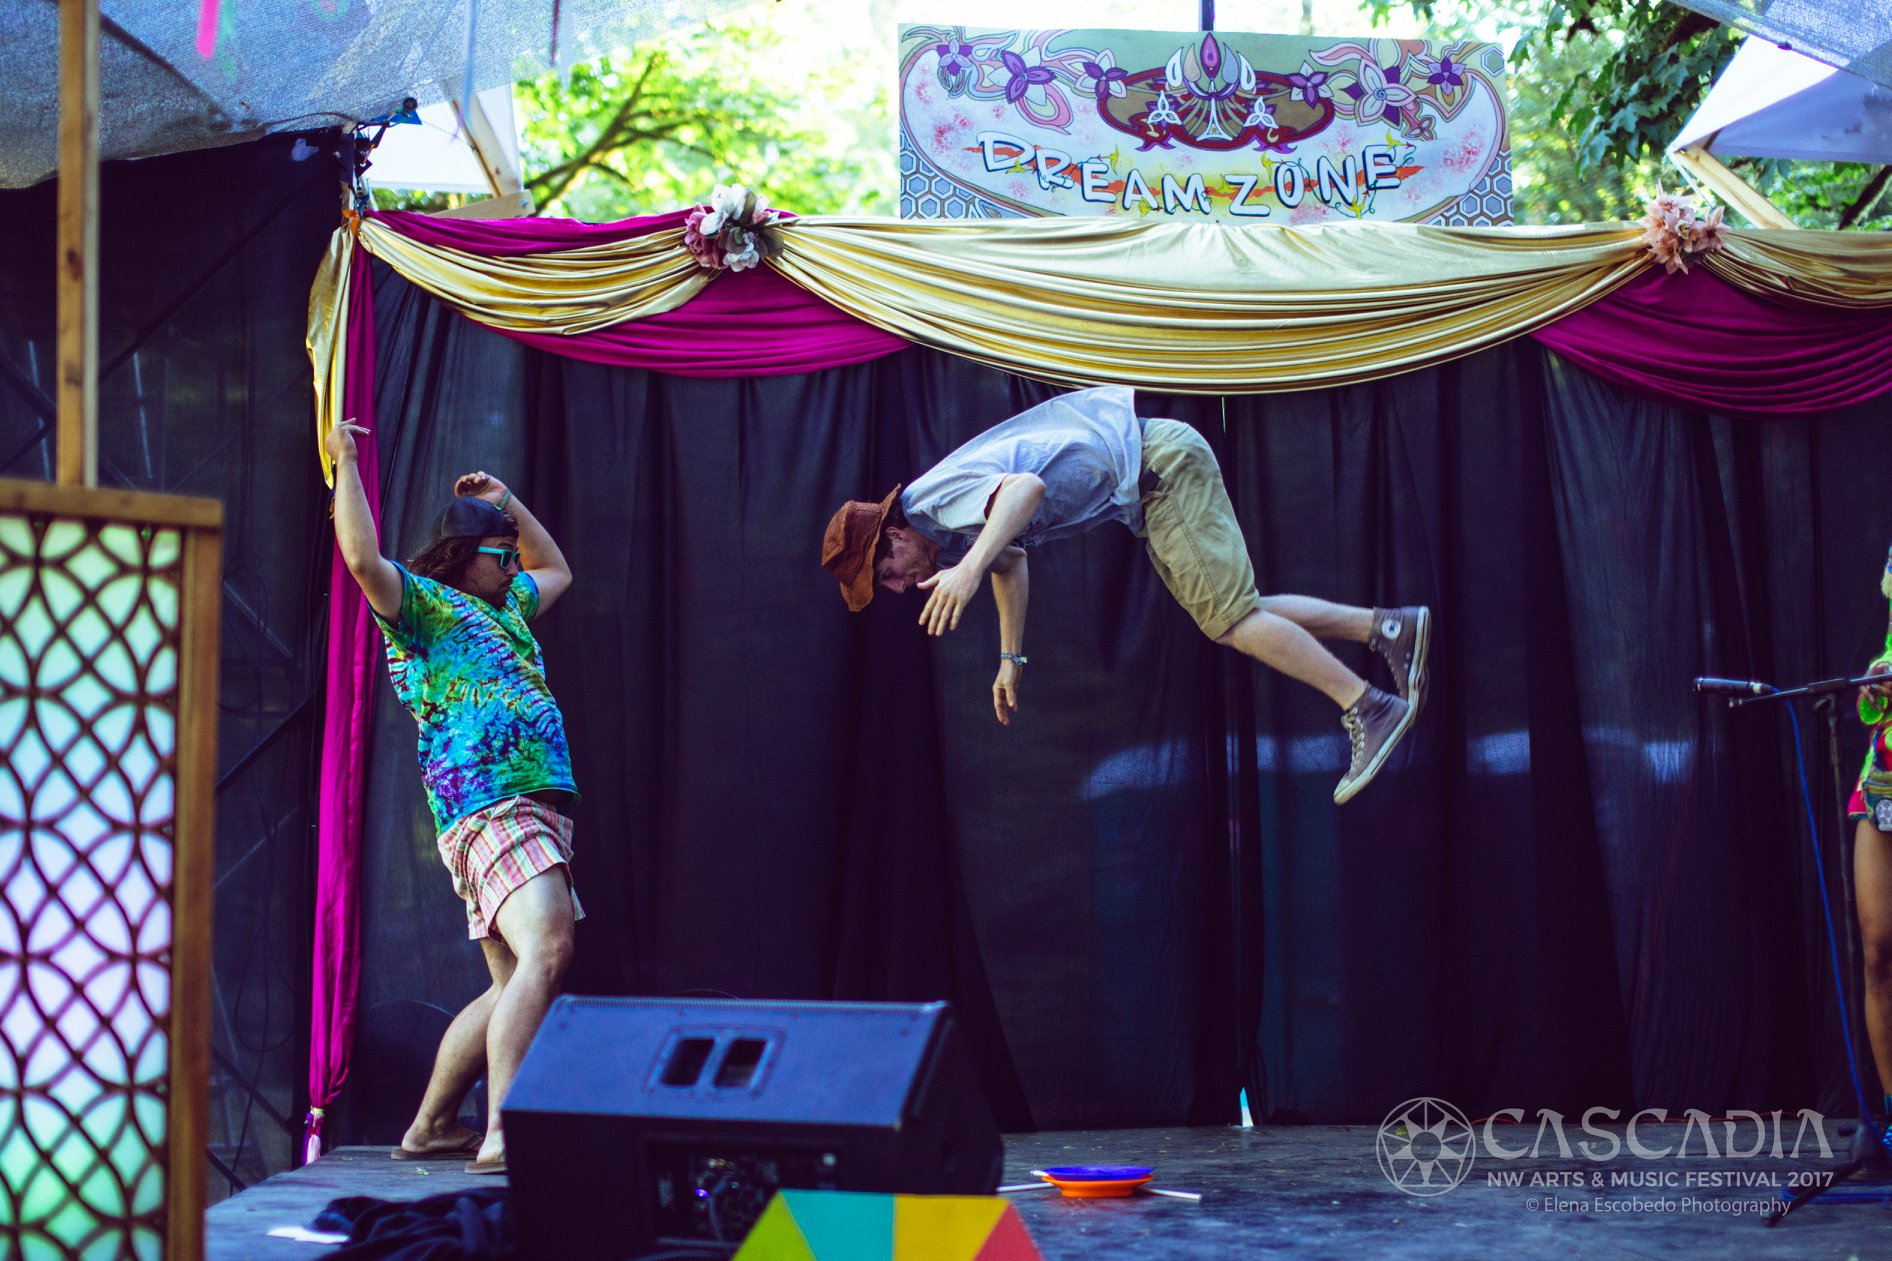 Acrobatic juggling duo show, stage perfo